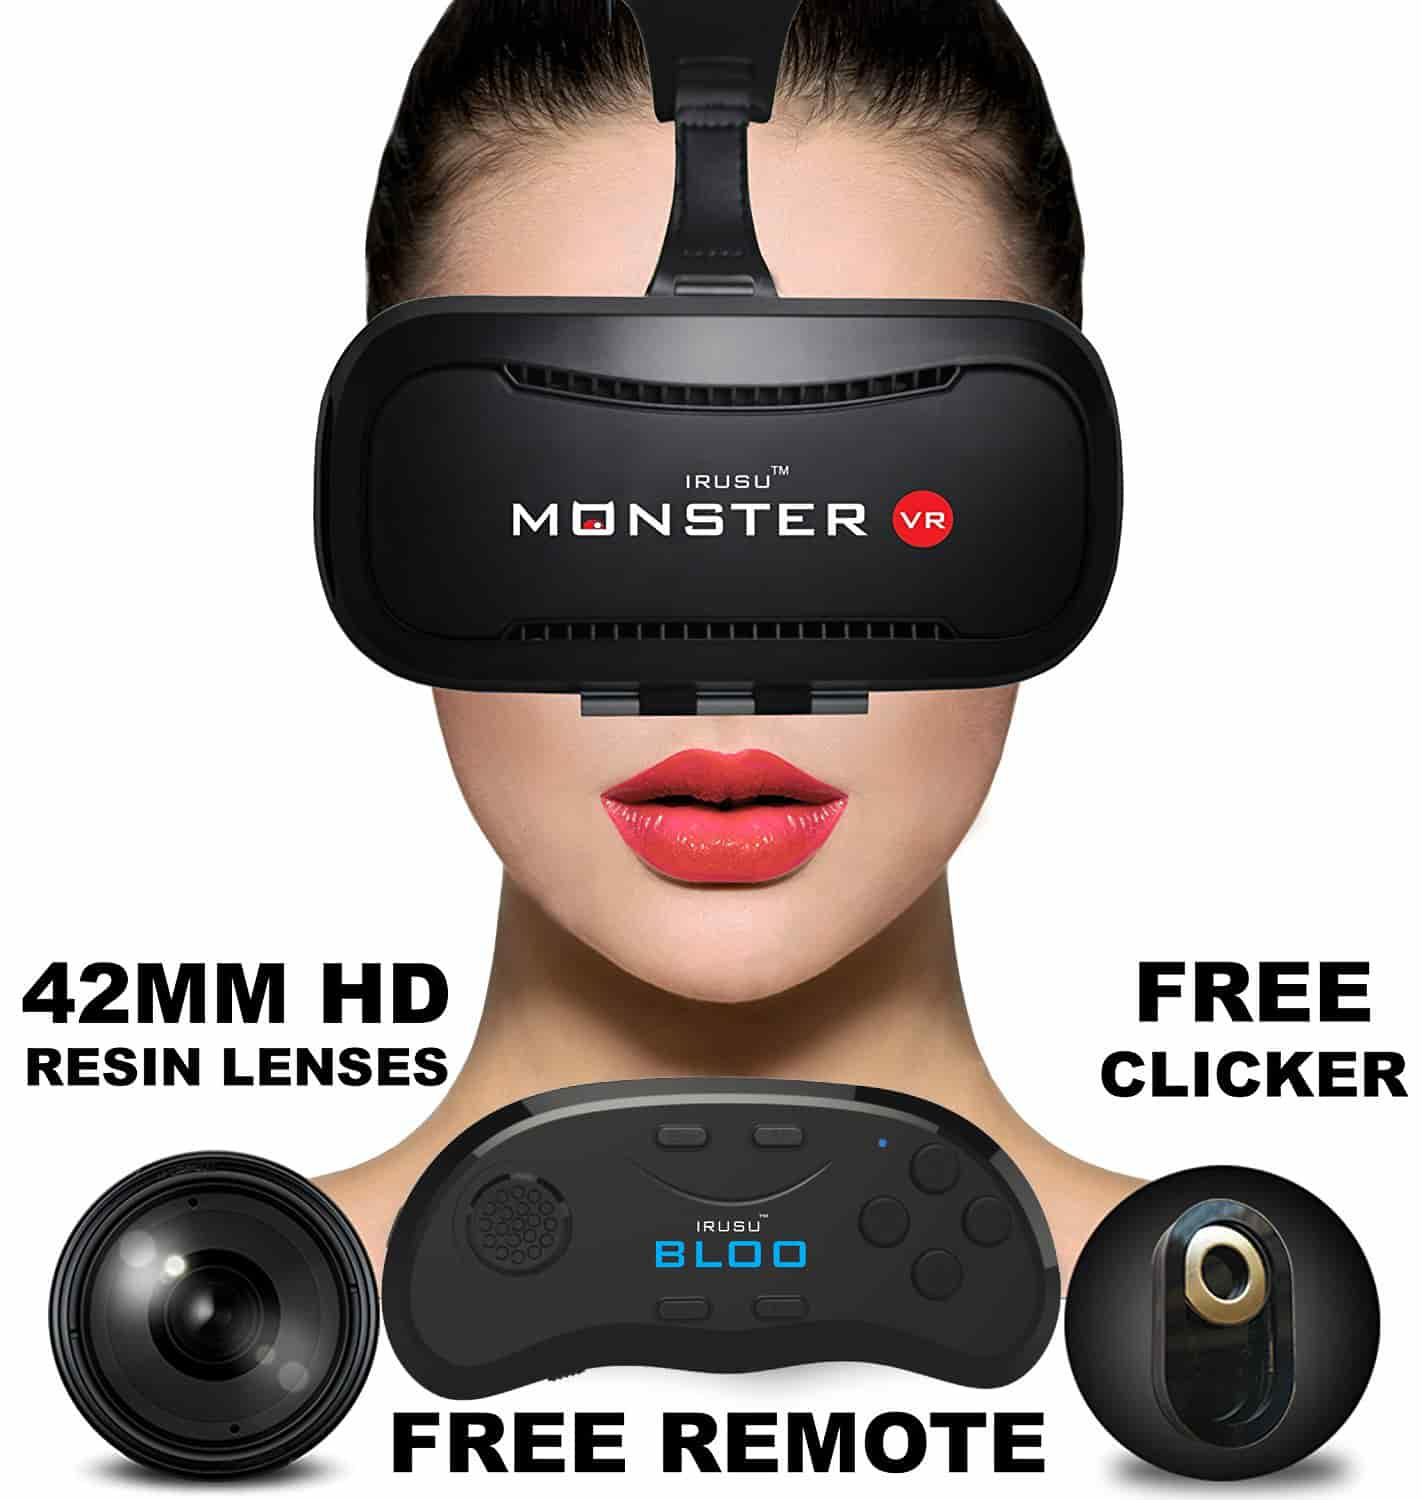 vr headsets in india for all mobiles,vr headsets online in india